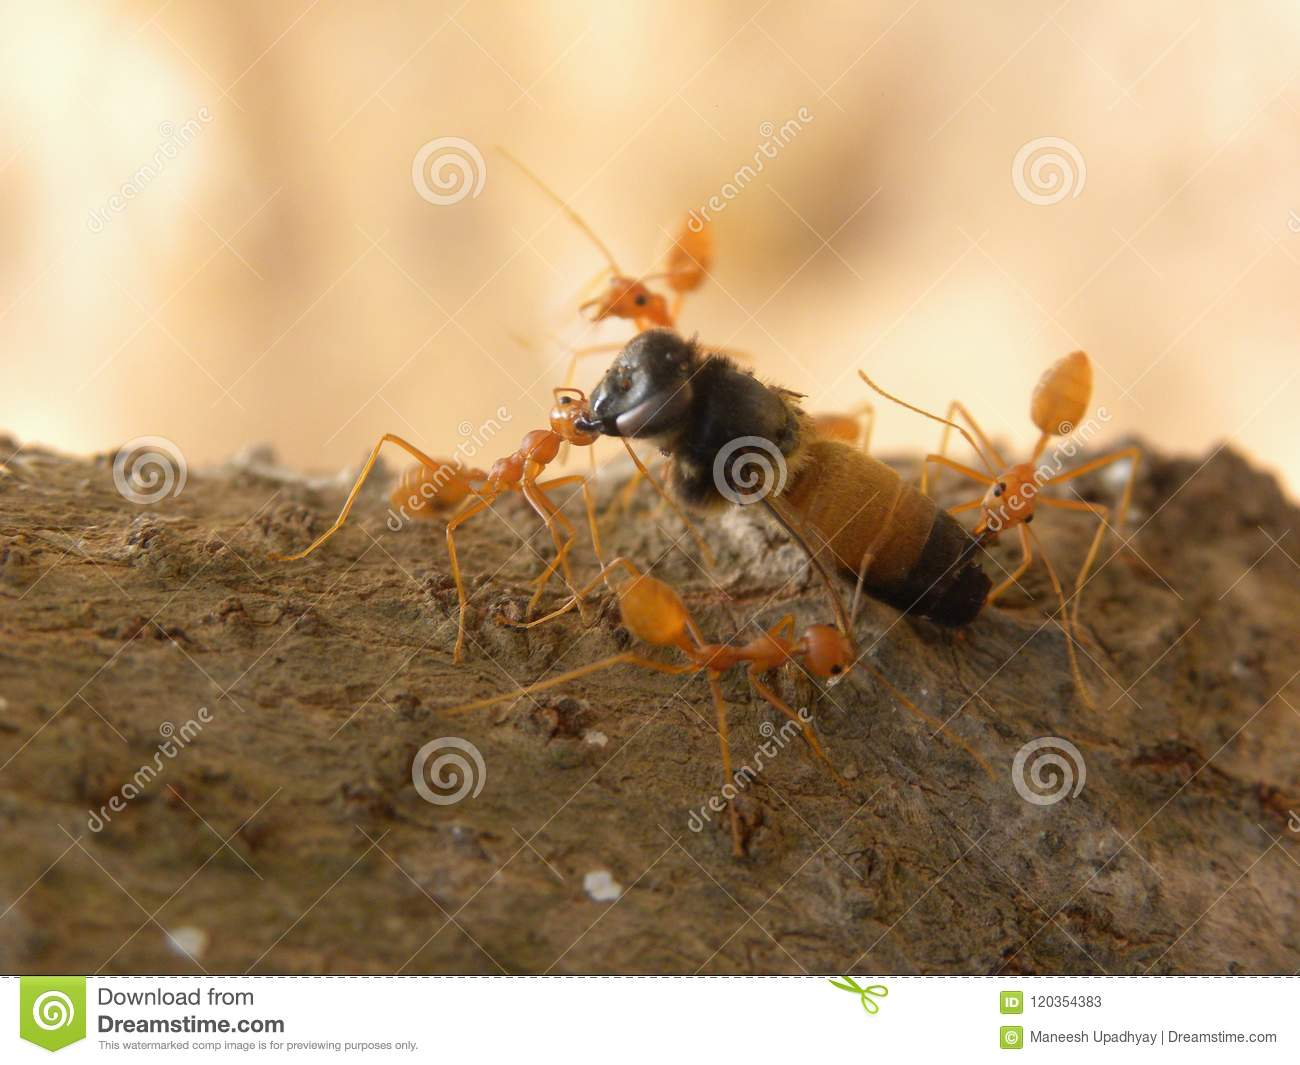 Fire ants carrying an insect